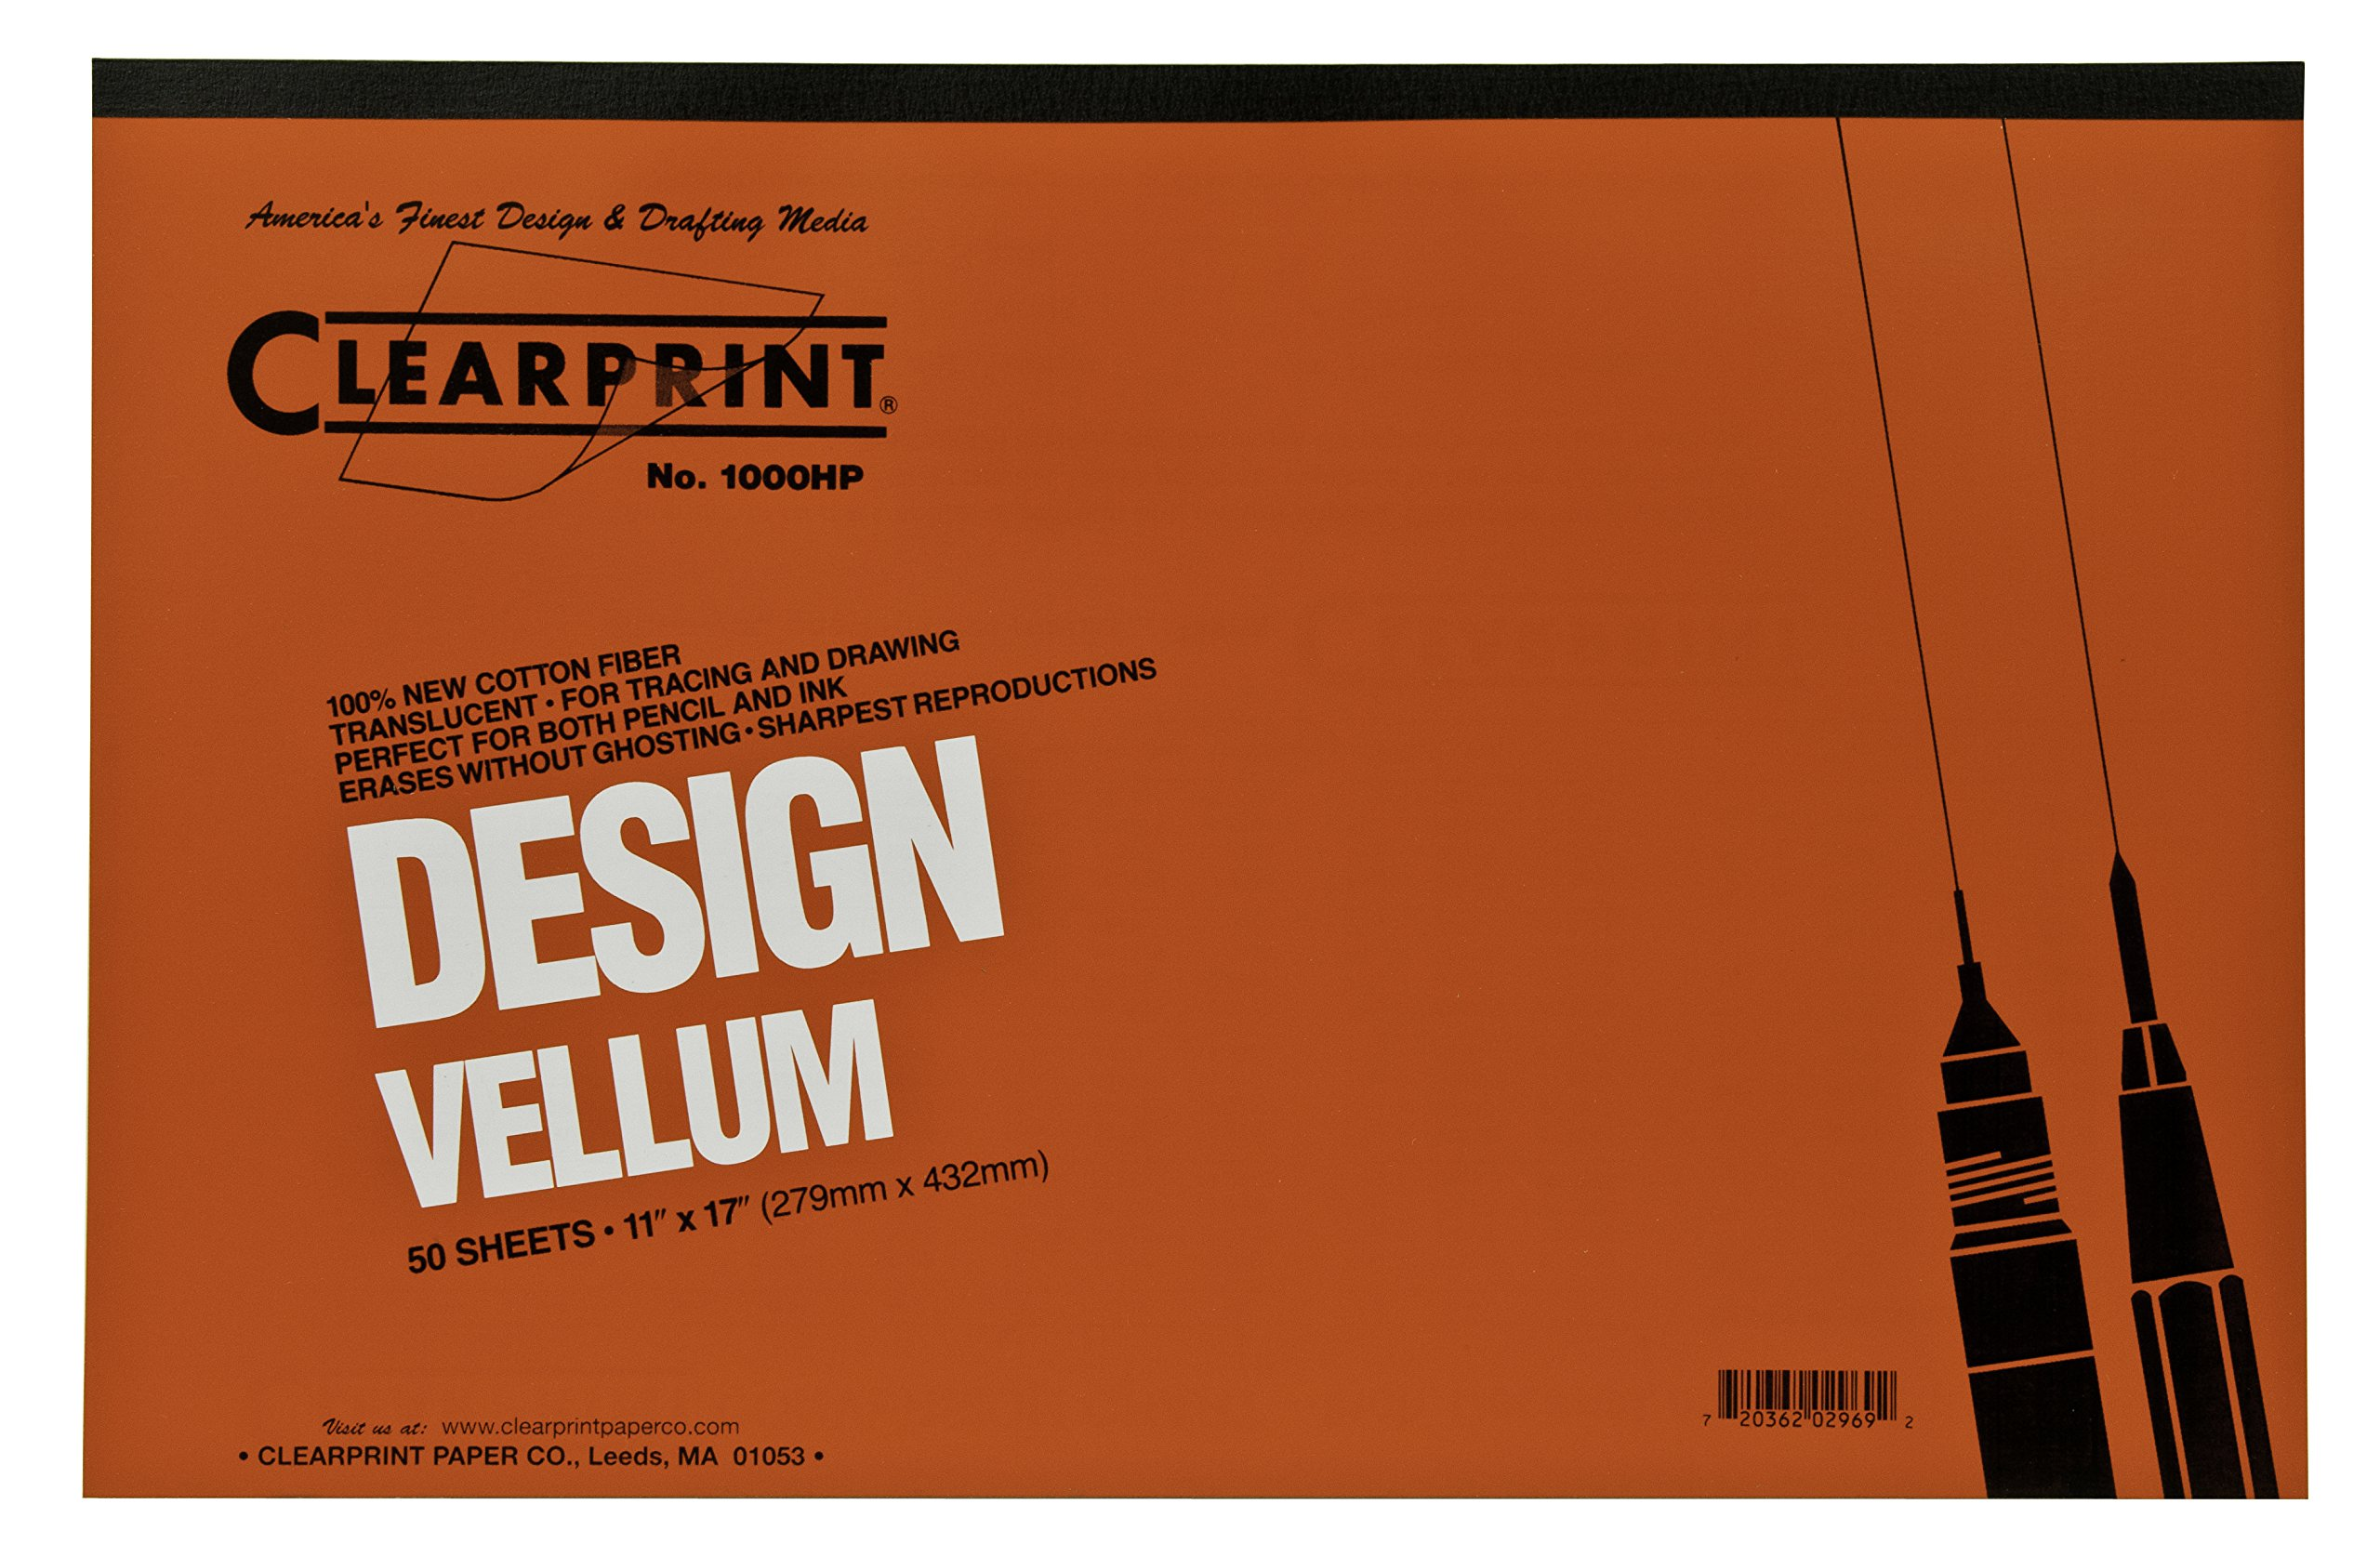 Clearprint 1000H Design Vellum Pad, 16 lb., 100% Cotton, 11 x 17 Inches, 50 Sheets, Translucent White, 1 Each (10001416)